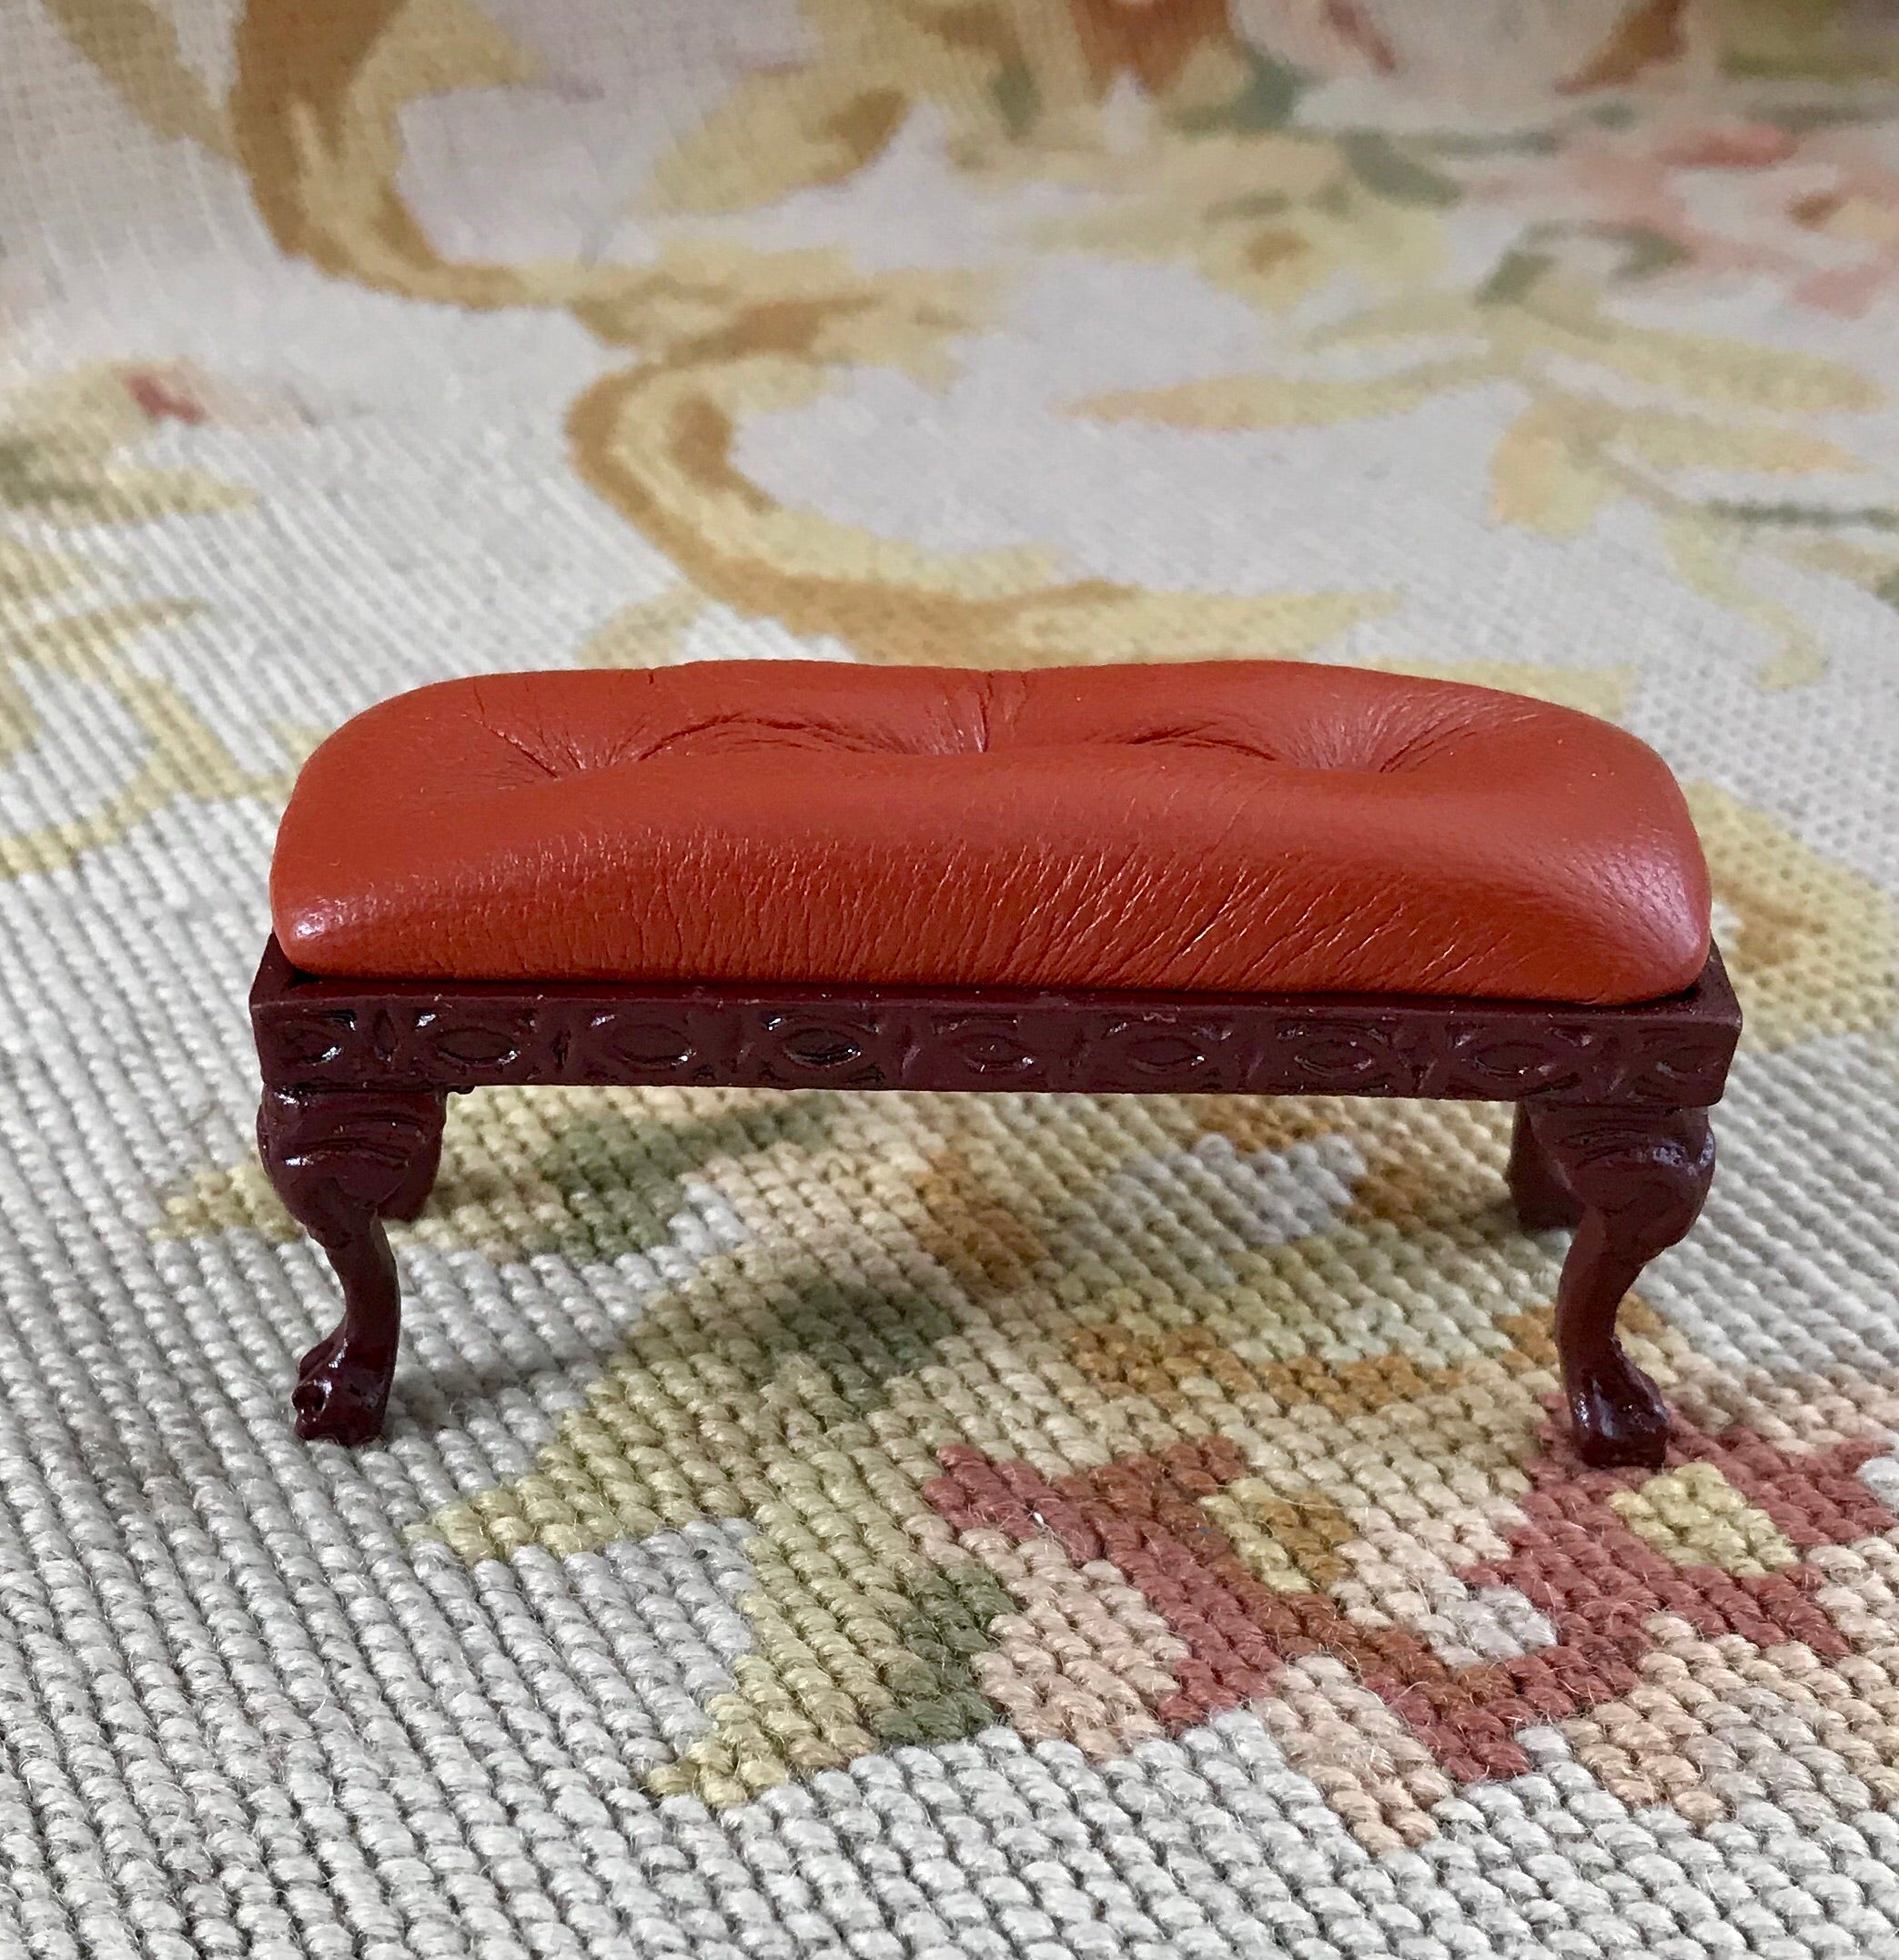 Stool Ottoman Seat Table Cinnamon Brown Leather 1:12 Scale Dollhouse Miniature